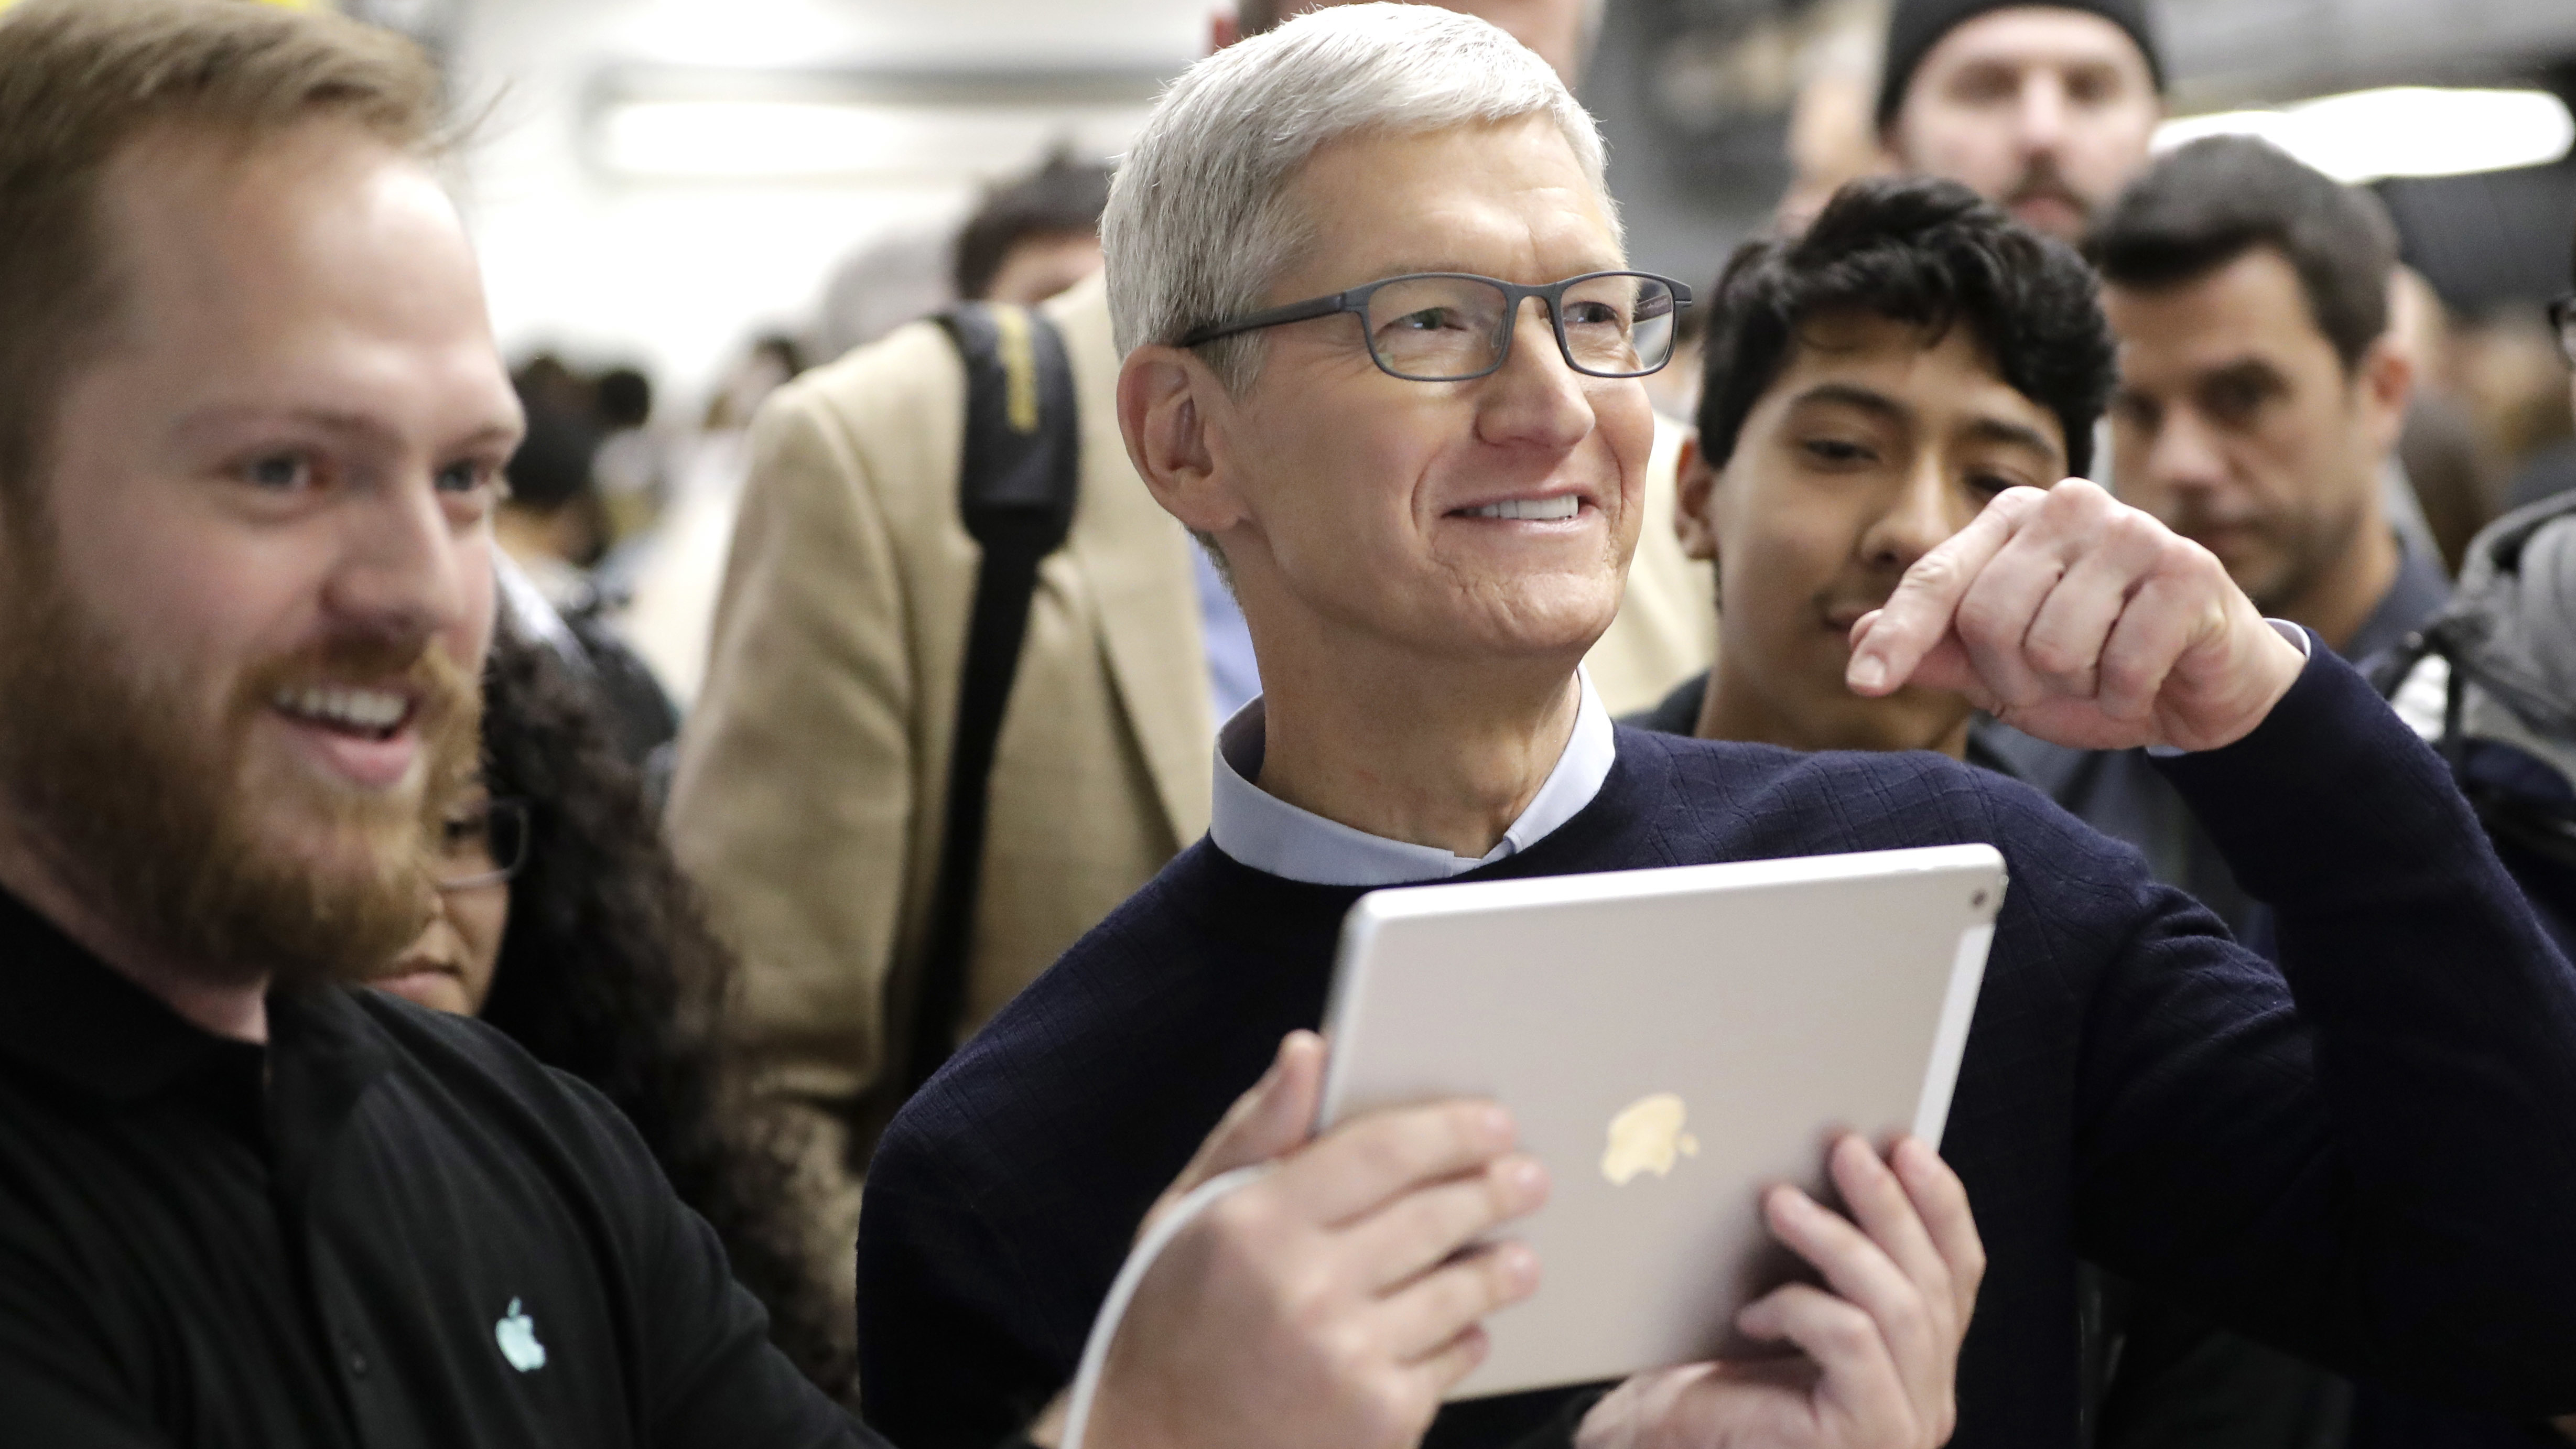 Apple CEO Tim Cook tells reporters they should see what is on the new iPad 9.7-inch screen at an Apple educational event at Lane Technical College Prep High School Tuesday, March 27, 2018, in Chicago. (AP Photo/Charles Rex Arbogast)